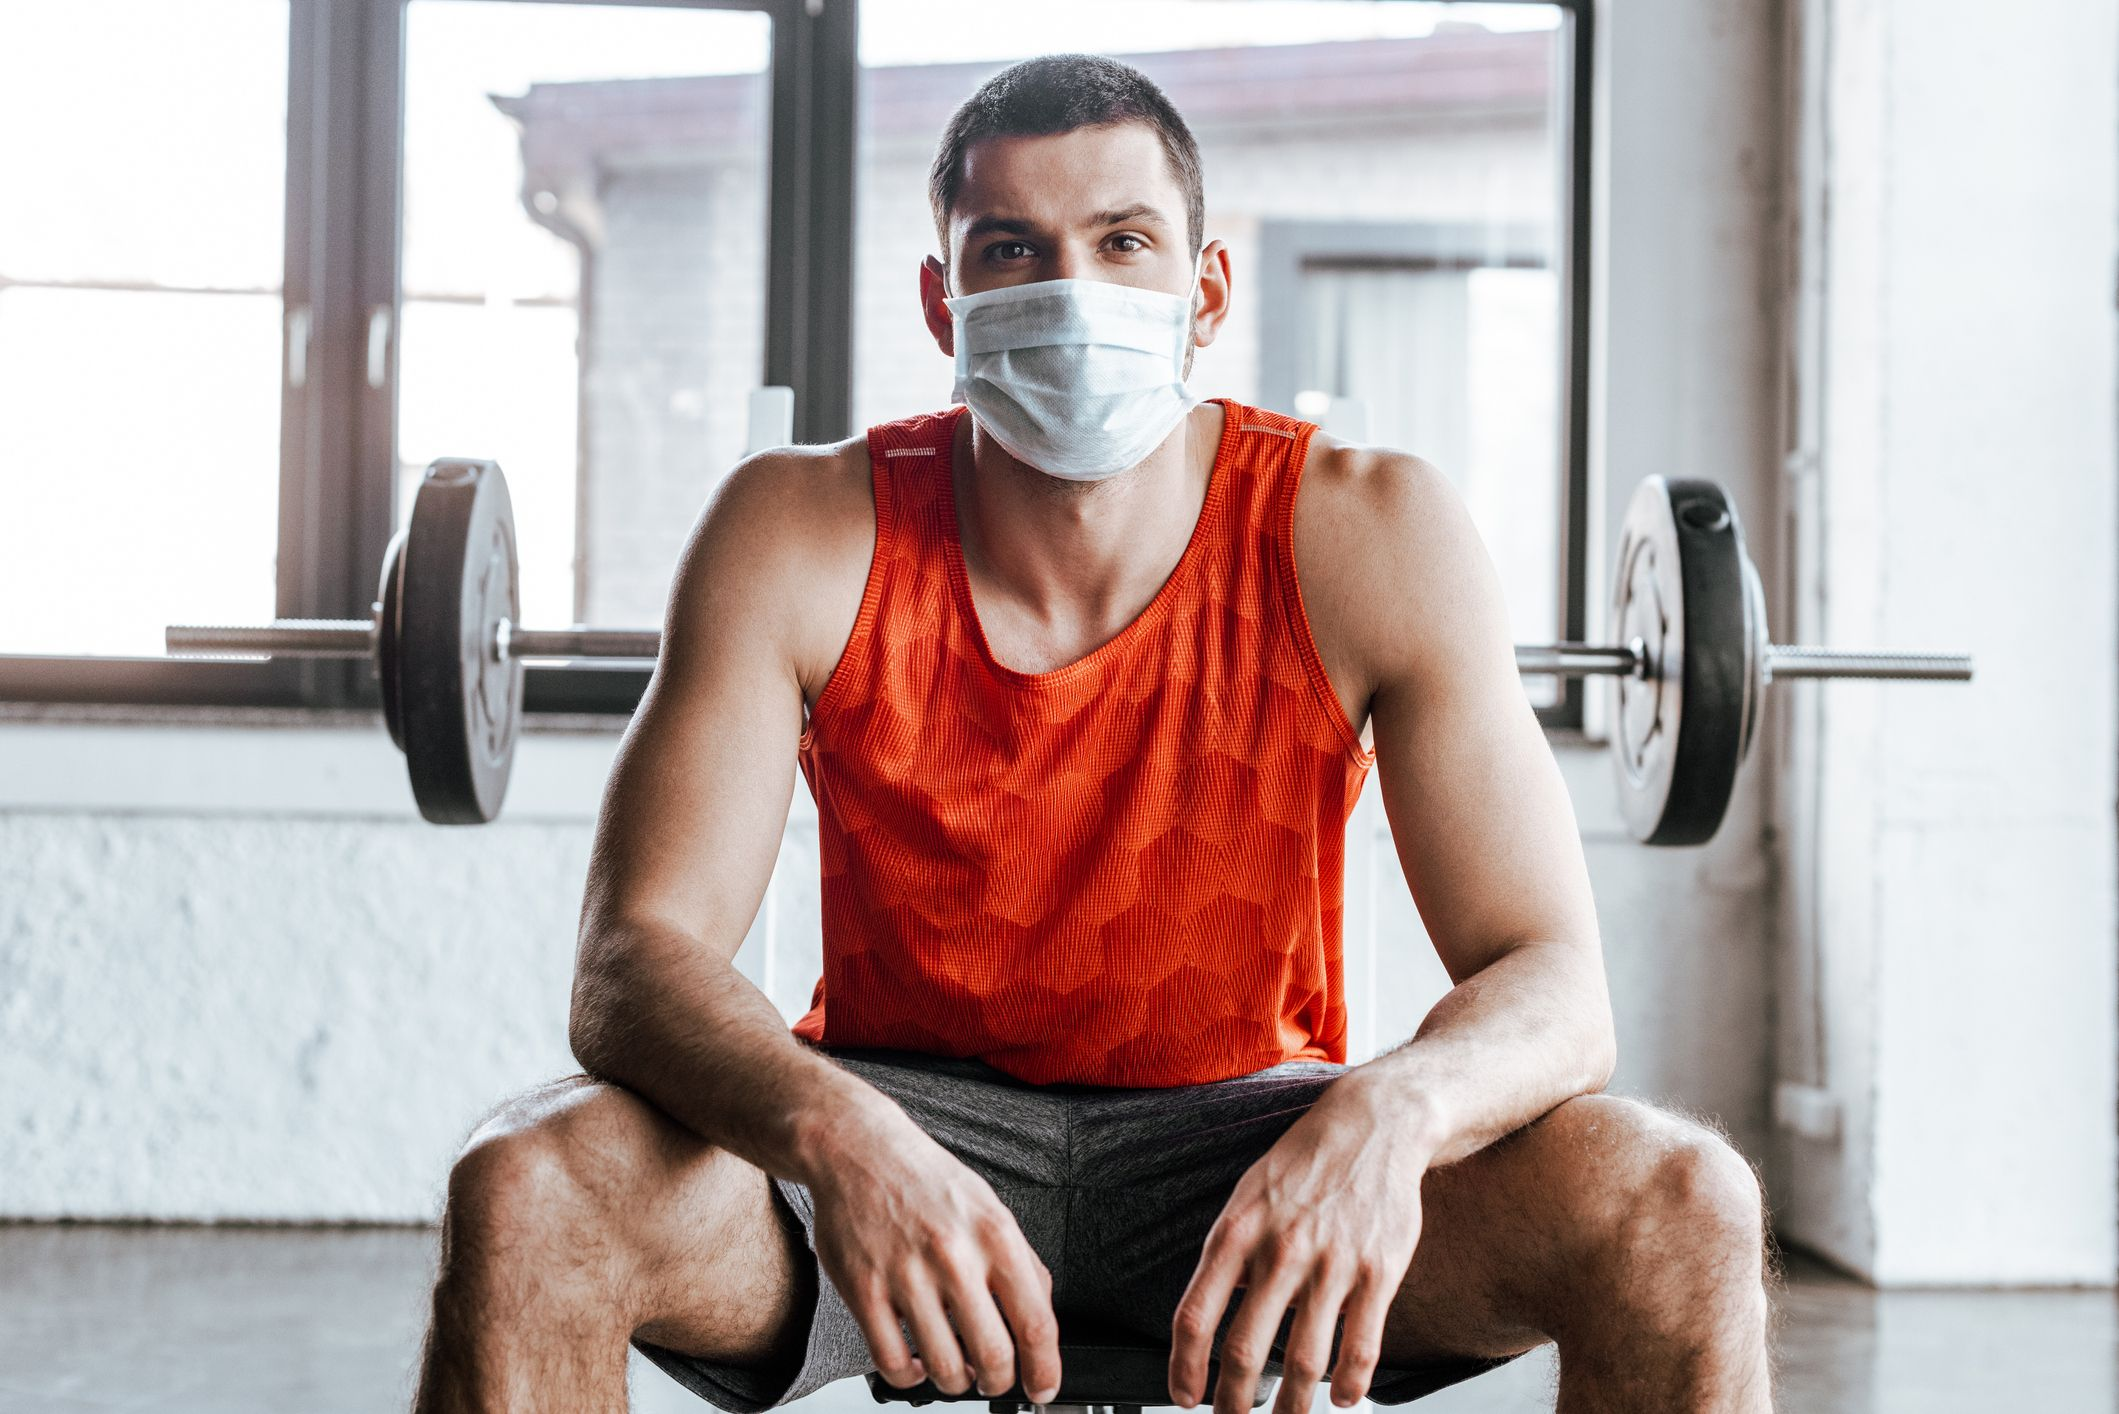 11 Breathable Face Masks for Workouts, Running and Keeping Others Safe